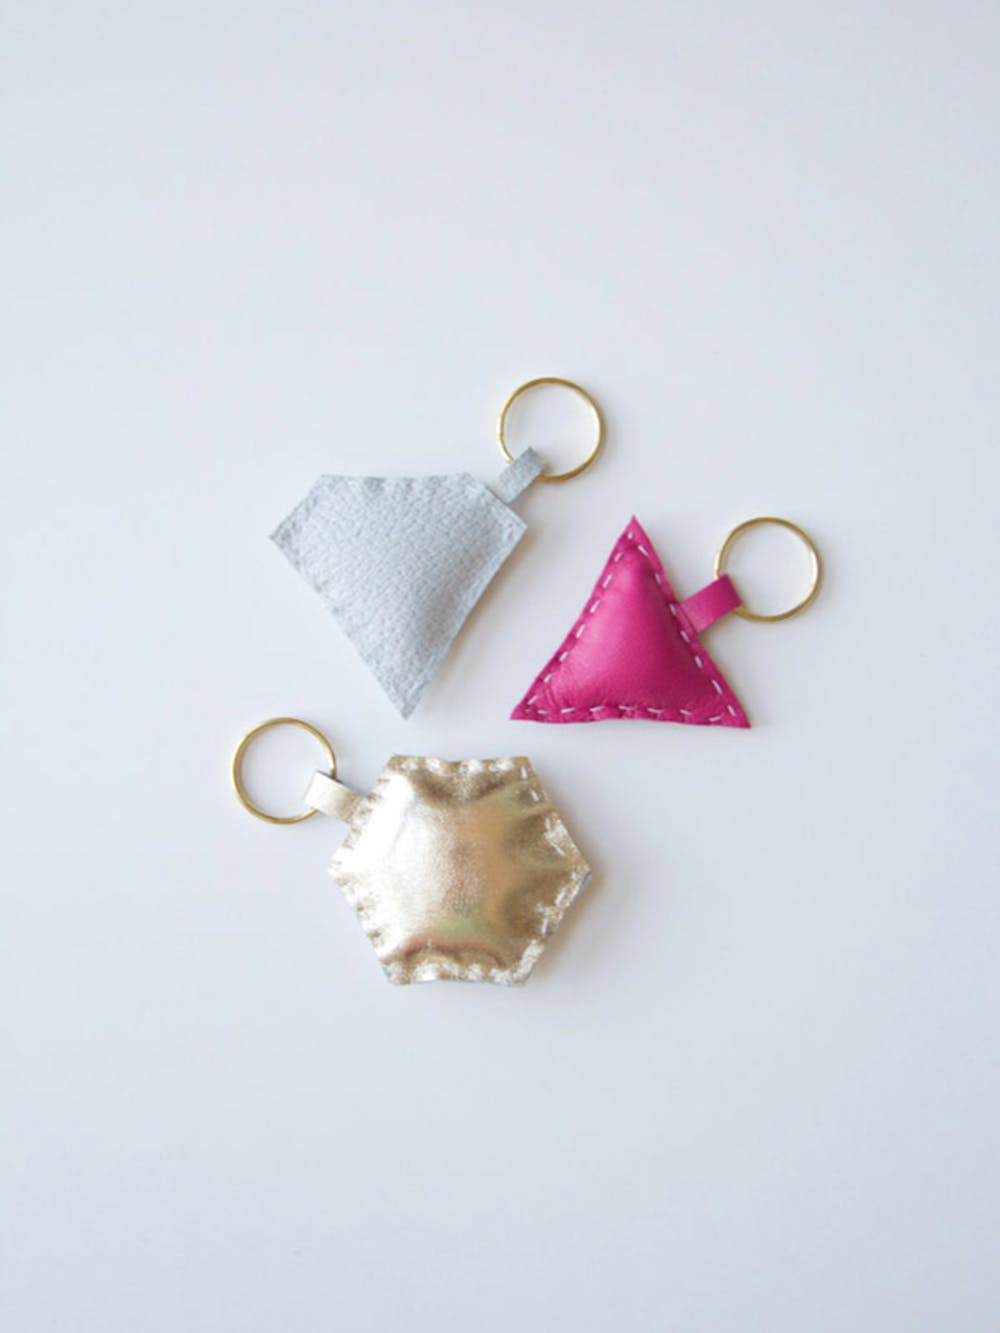 Diy leather shape keychain